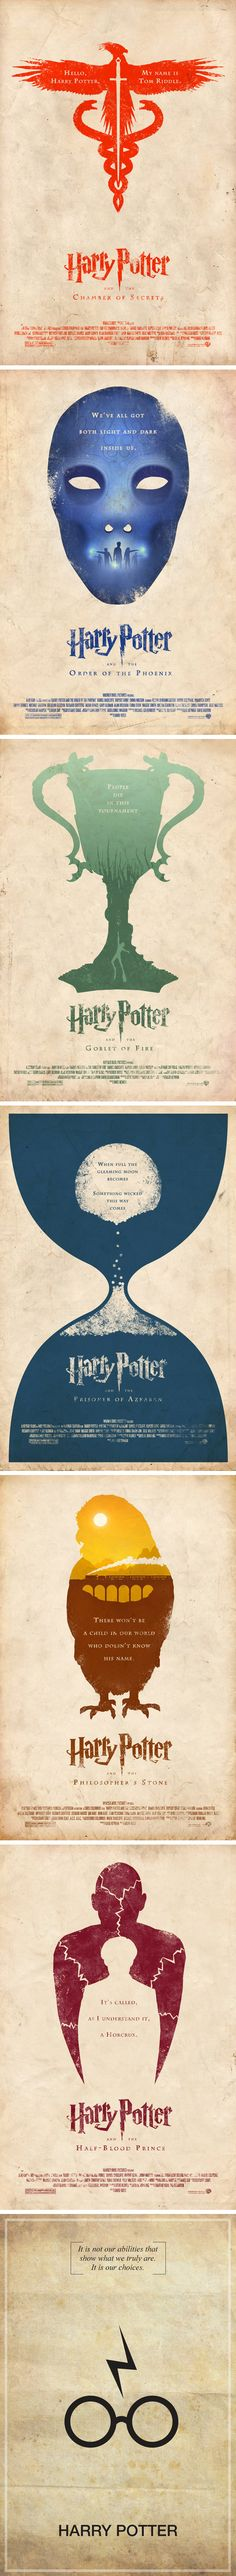 Alternate Harry Potter movie posters. Too cool.